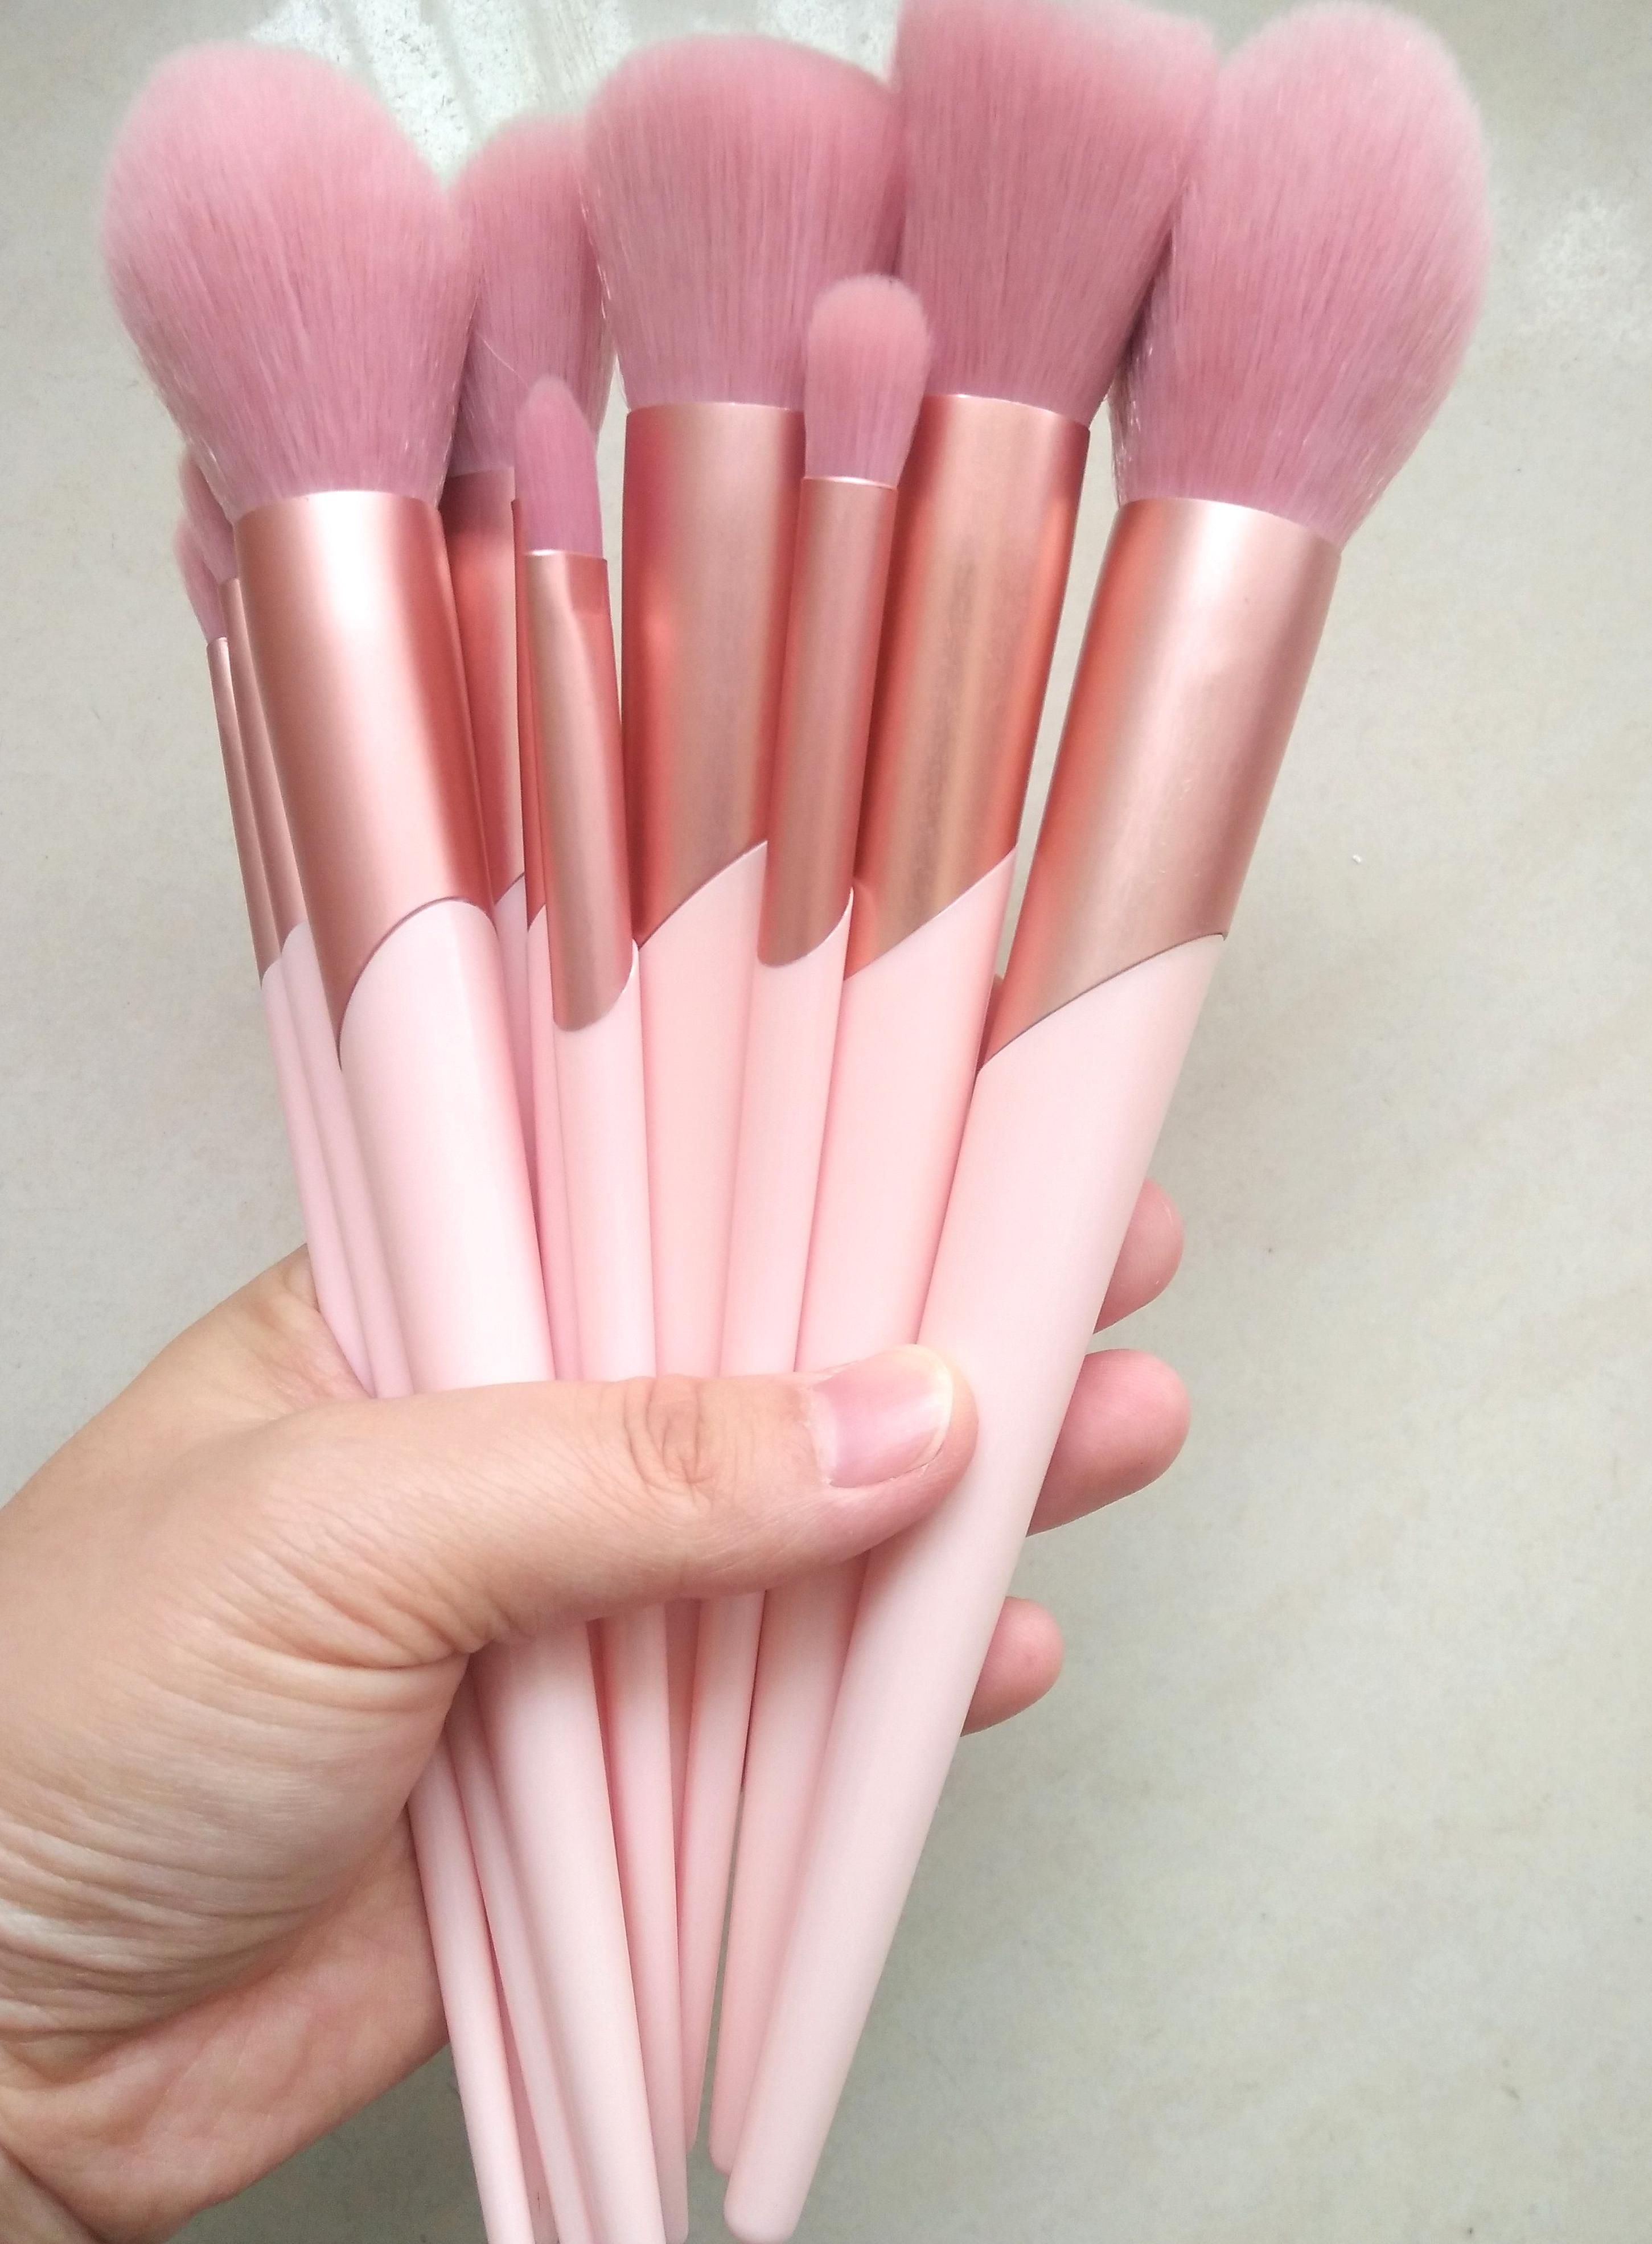 Cute pink makeup brushes set available wholesale Inquiry